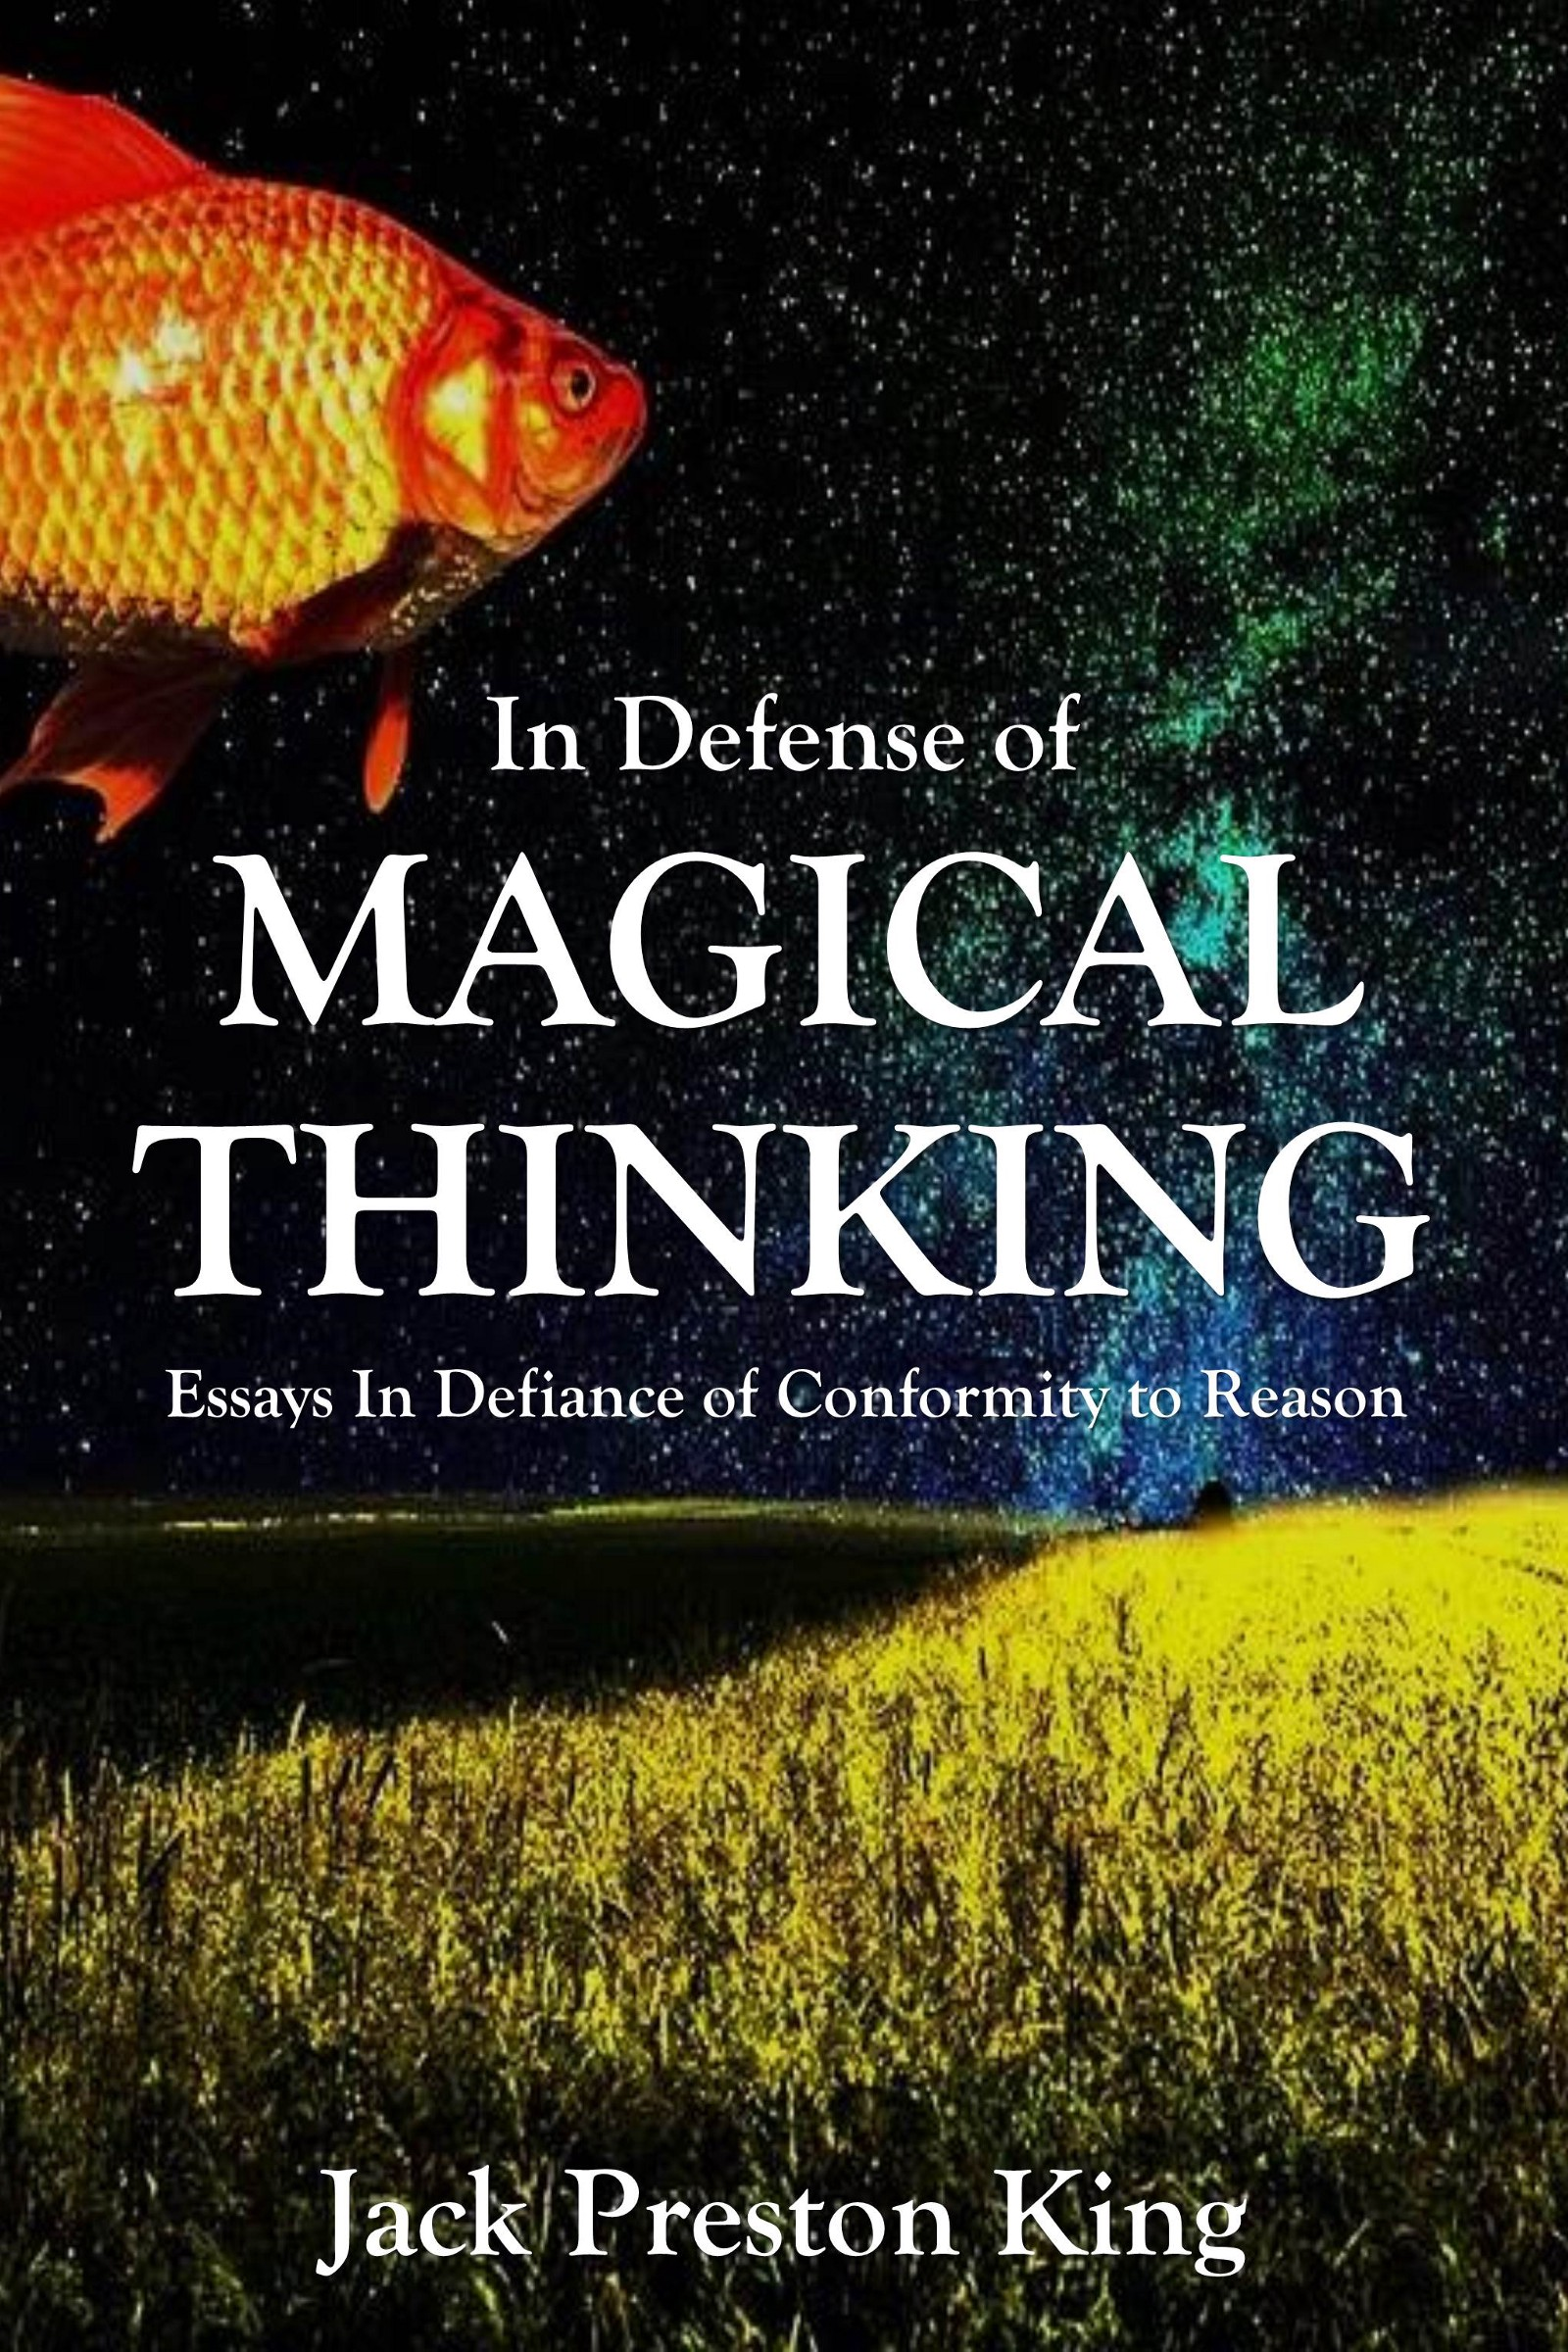 in defense of magical thinking beyondtherobot amazon book description